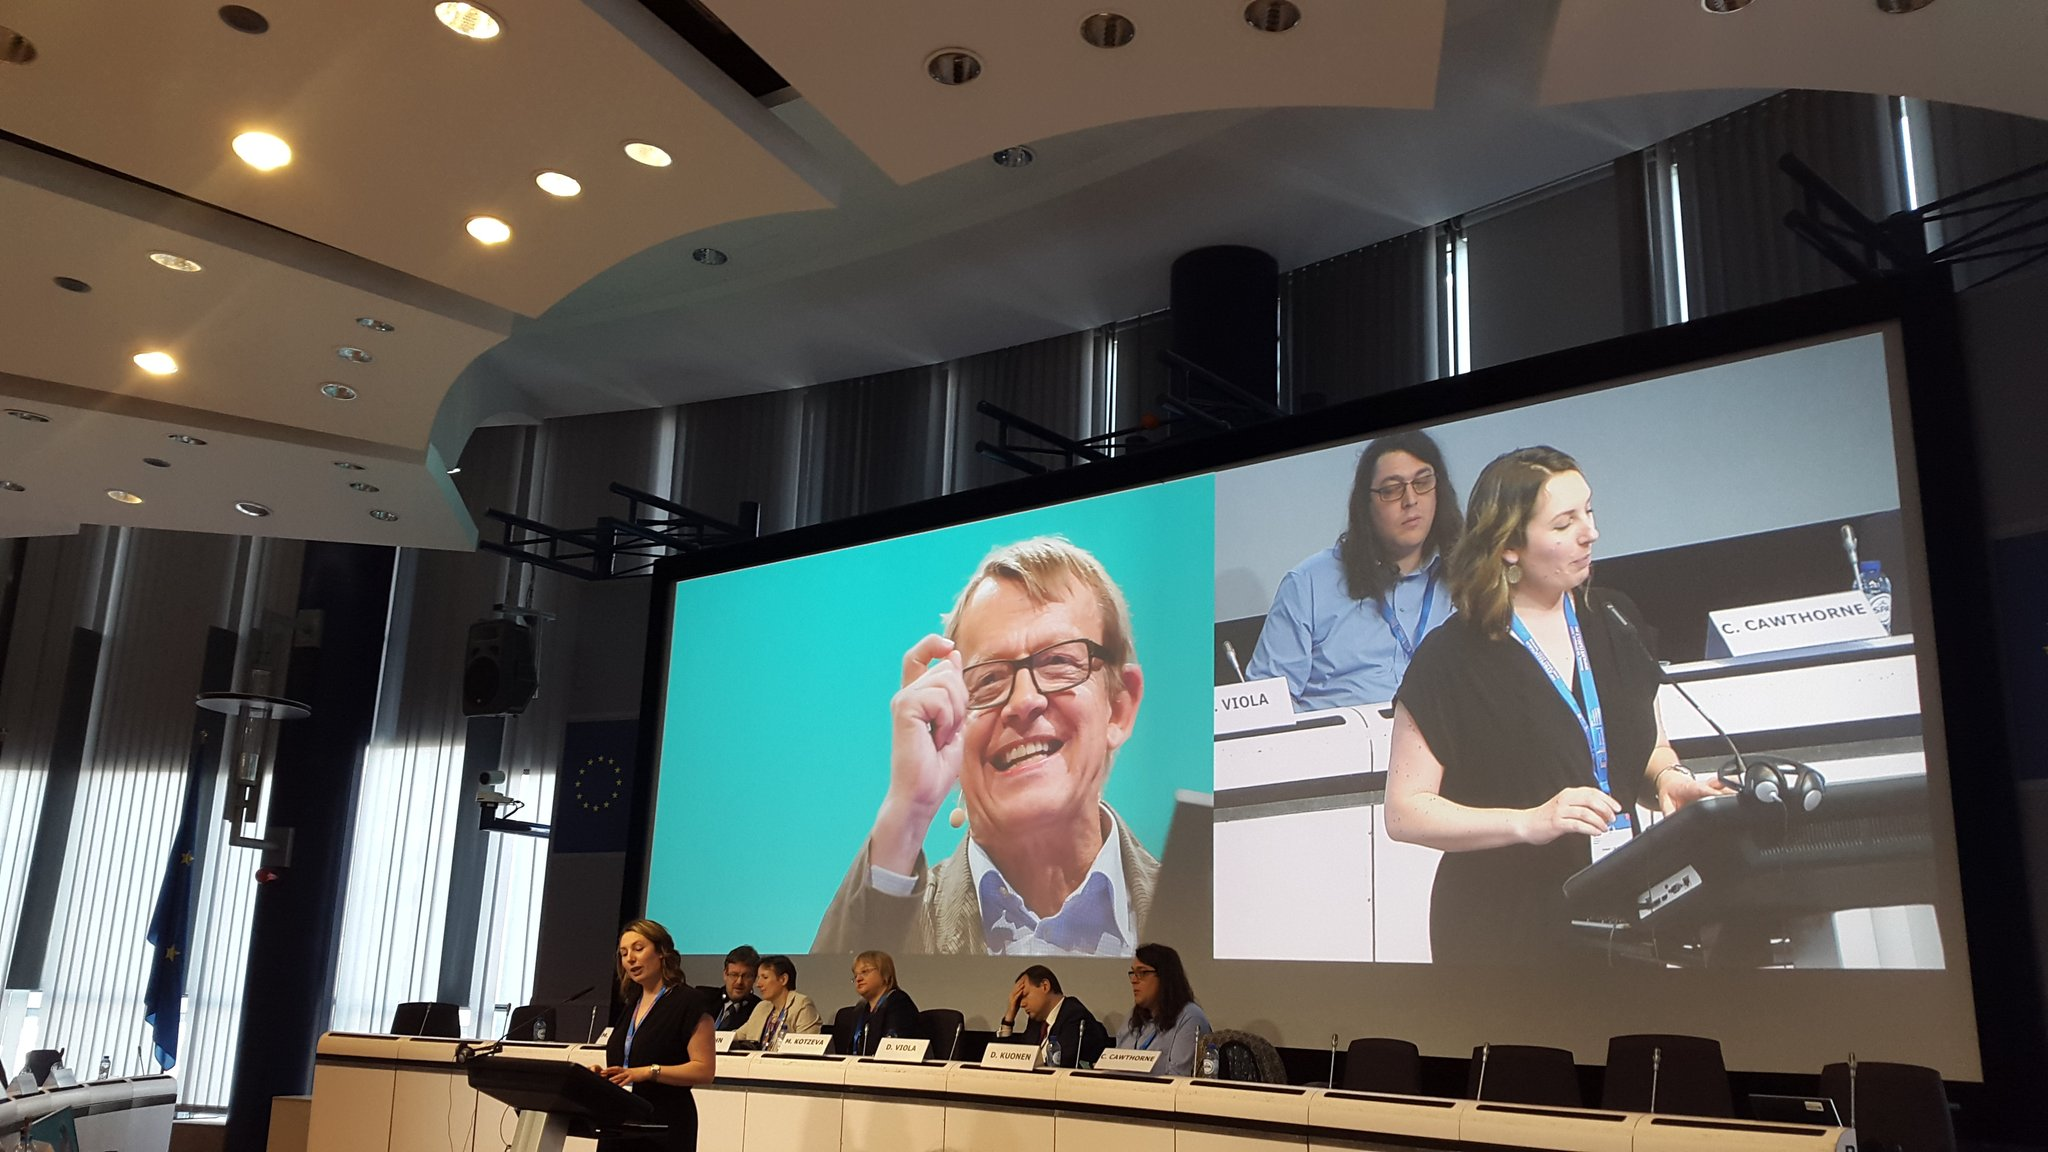 No better place then #ntts2017 to remember @HansRosling and his efforts to link statistics and digital publishing by @crocstar https://t.co/AJZOa2qW6a